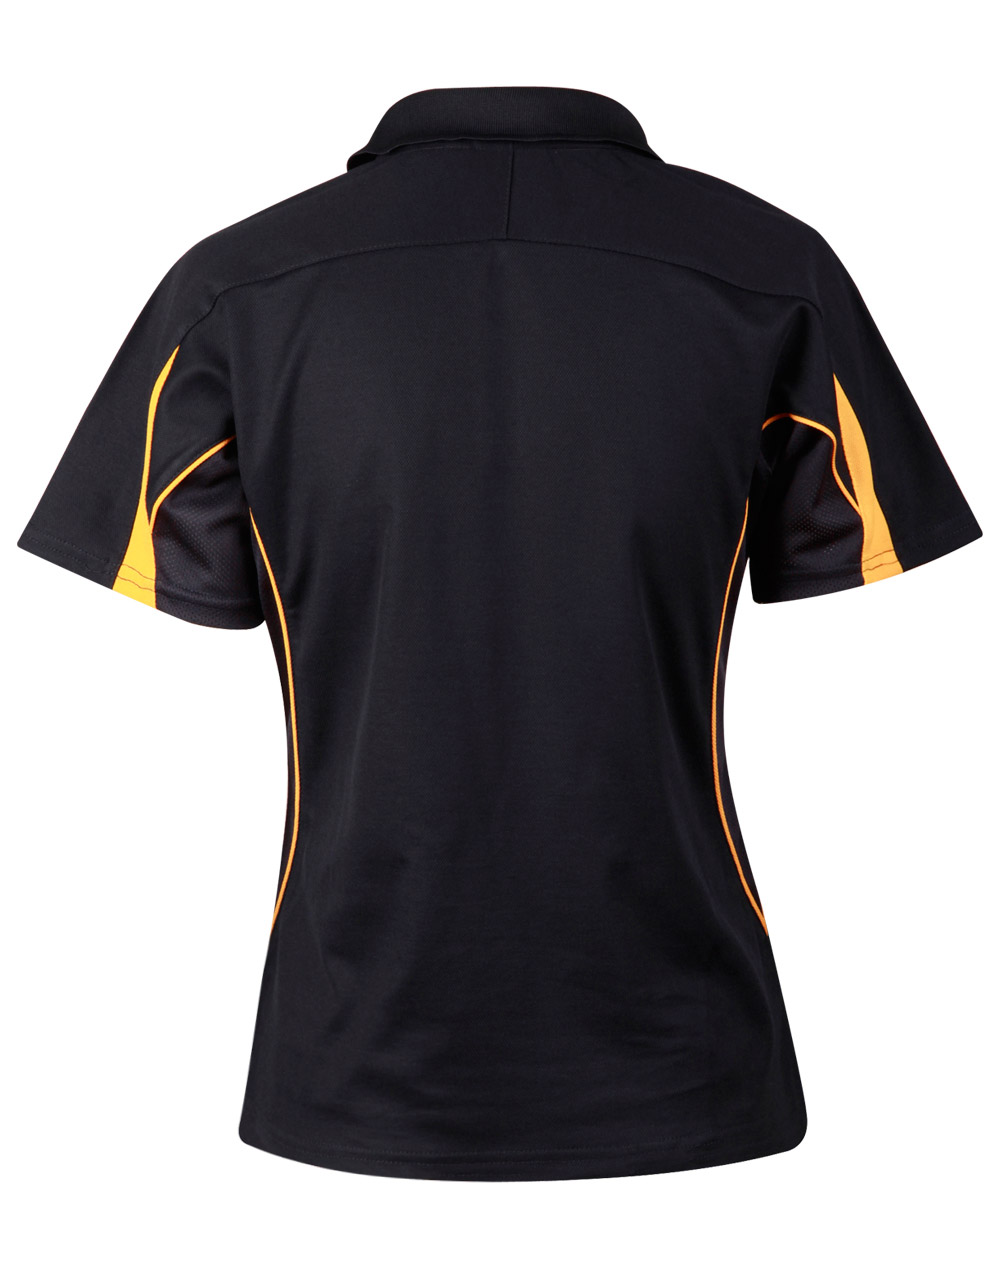 https://s3-ap-southeast-1.amazonaws.com/ws-imgs/POLOSHIRTS/PS54_NavyGold_Back.jpg